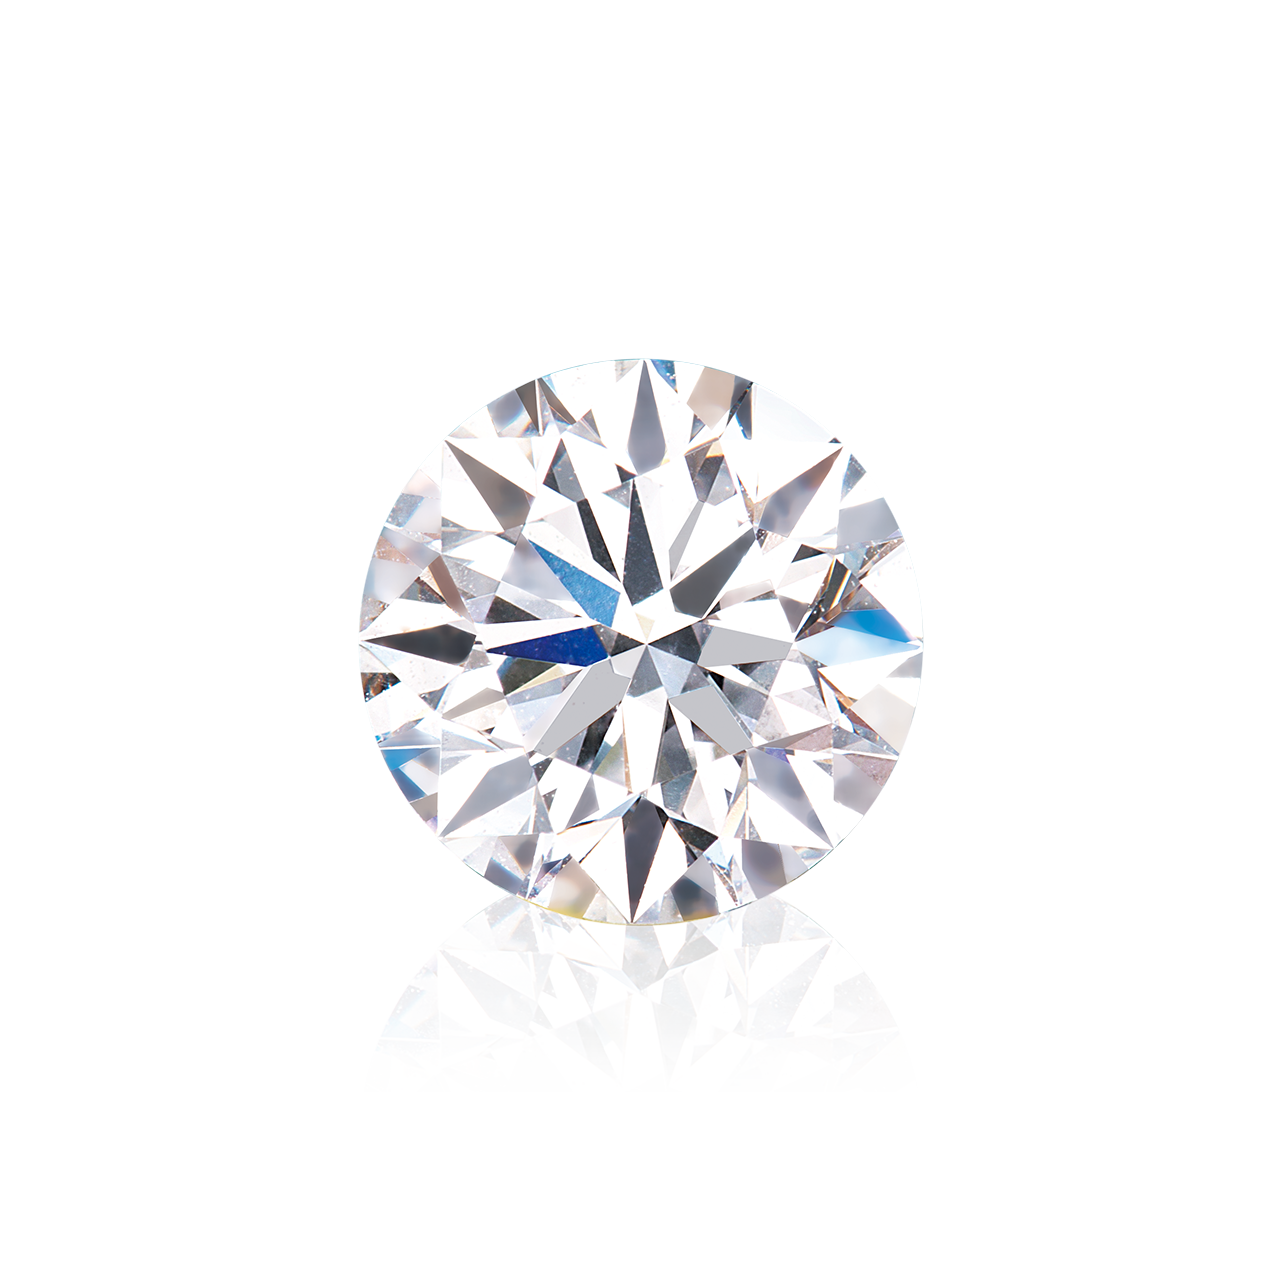 GIA 全美白鑽裸石 2.03克拉